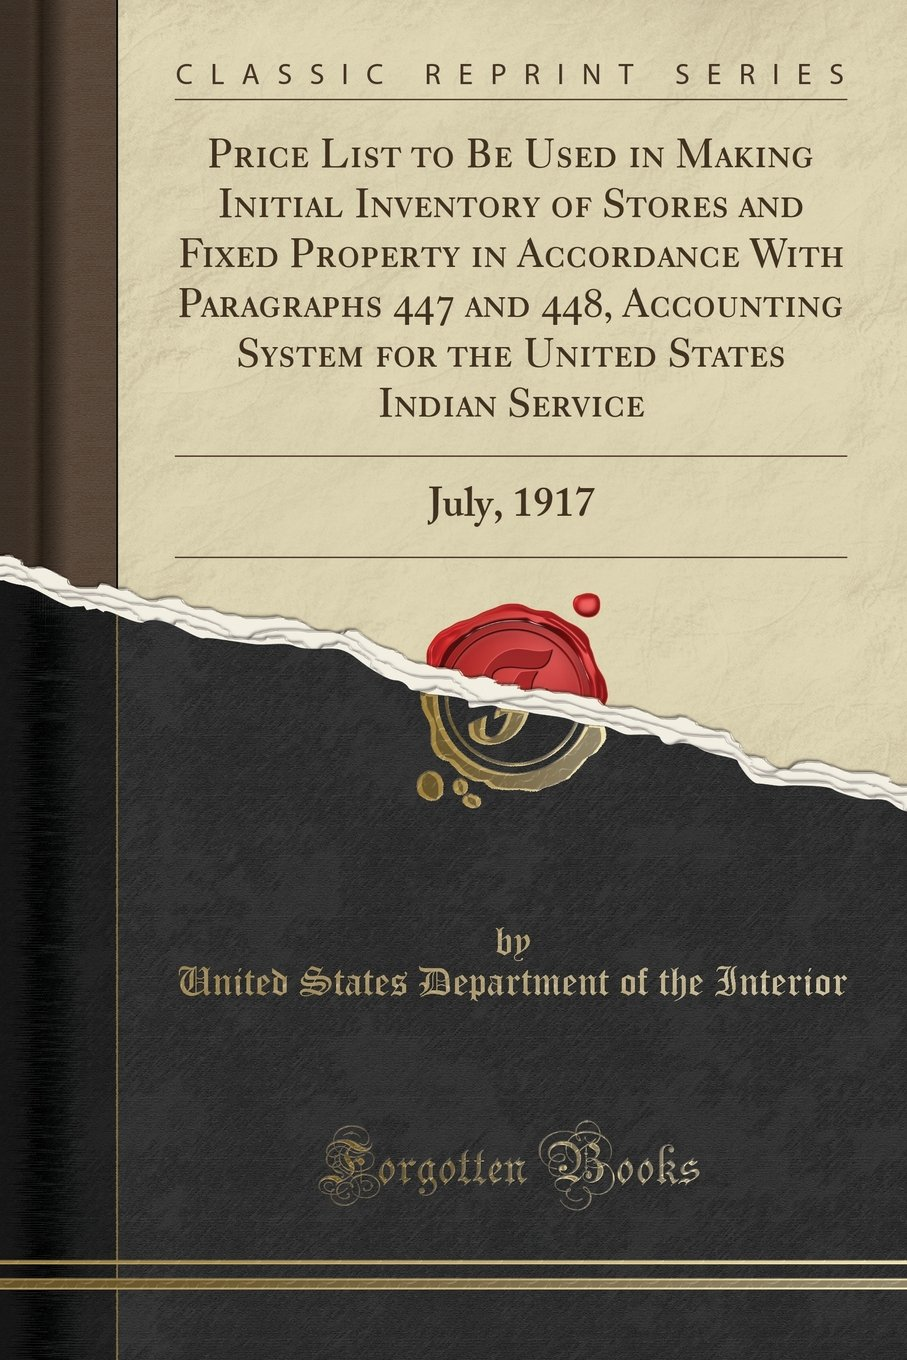 Download Price List to Be Used in Making Initial Inventory of Stores and Fixed Property in Accordance With Paragraphs 447 and 448, Accounting System for the ... Indian Service: July, 1917 (Classic Reprint) PDF